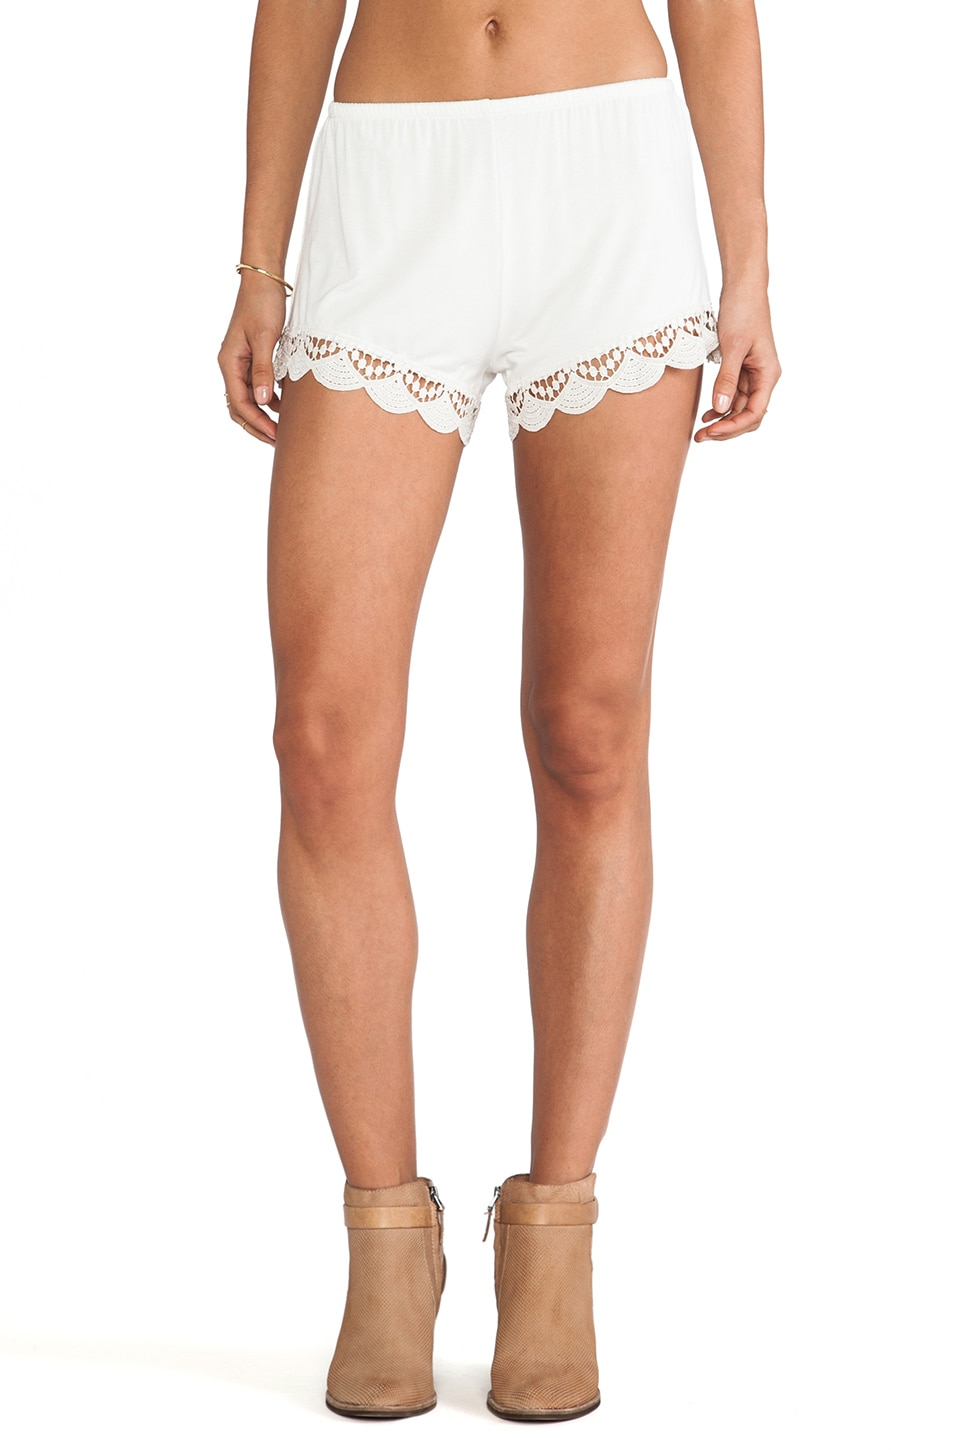 Jen's Pirate Booty Peek-A-Boo Cheeky Shorts in Ivory